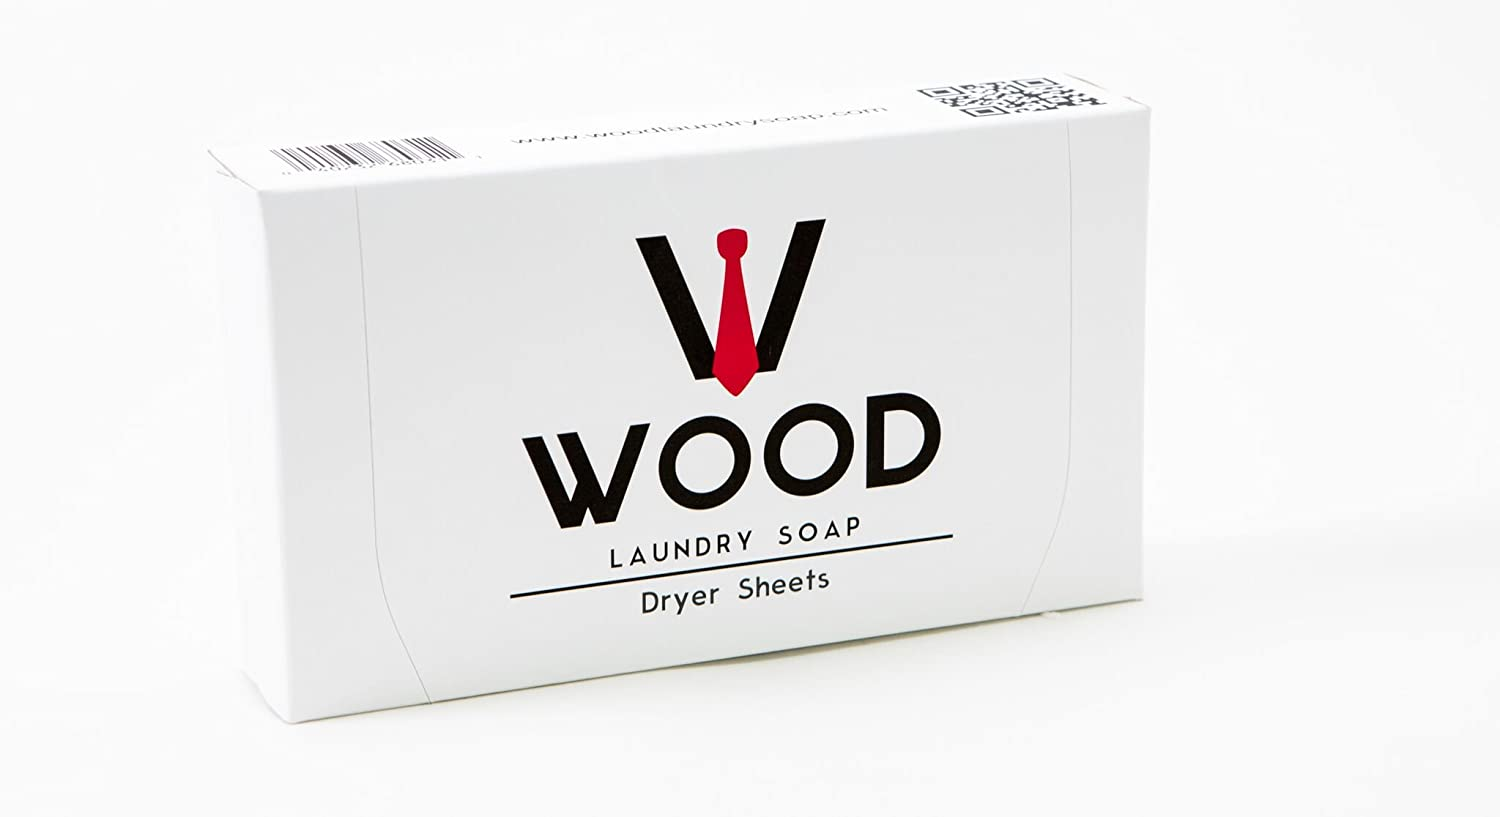 Dryer Sheets with Sandalwood Citrus Scent by Wood Laundry Soap, 40 Count (1, 40 Count)